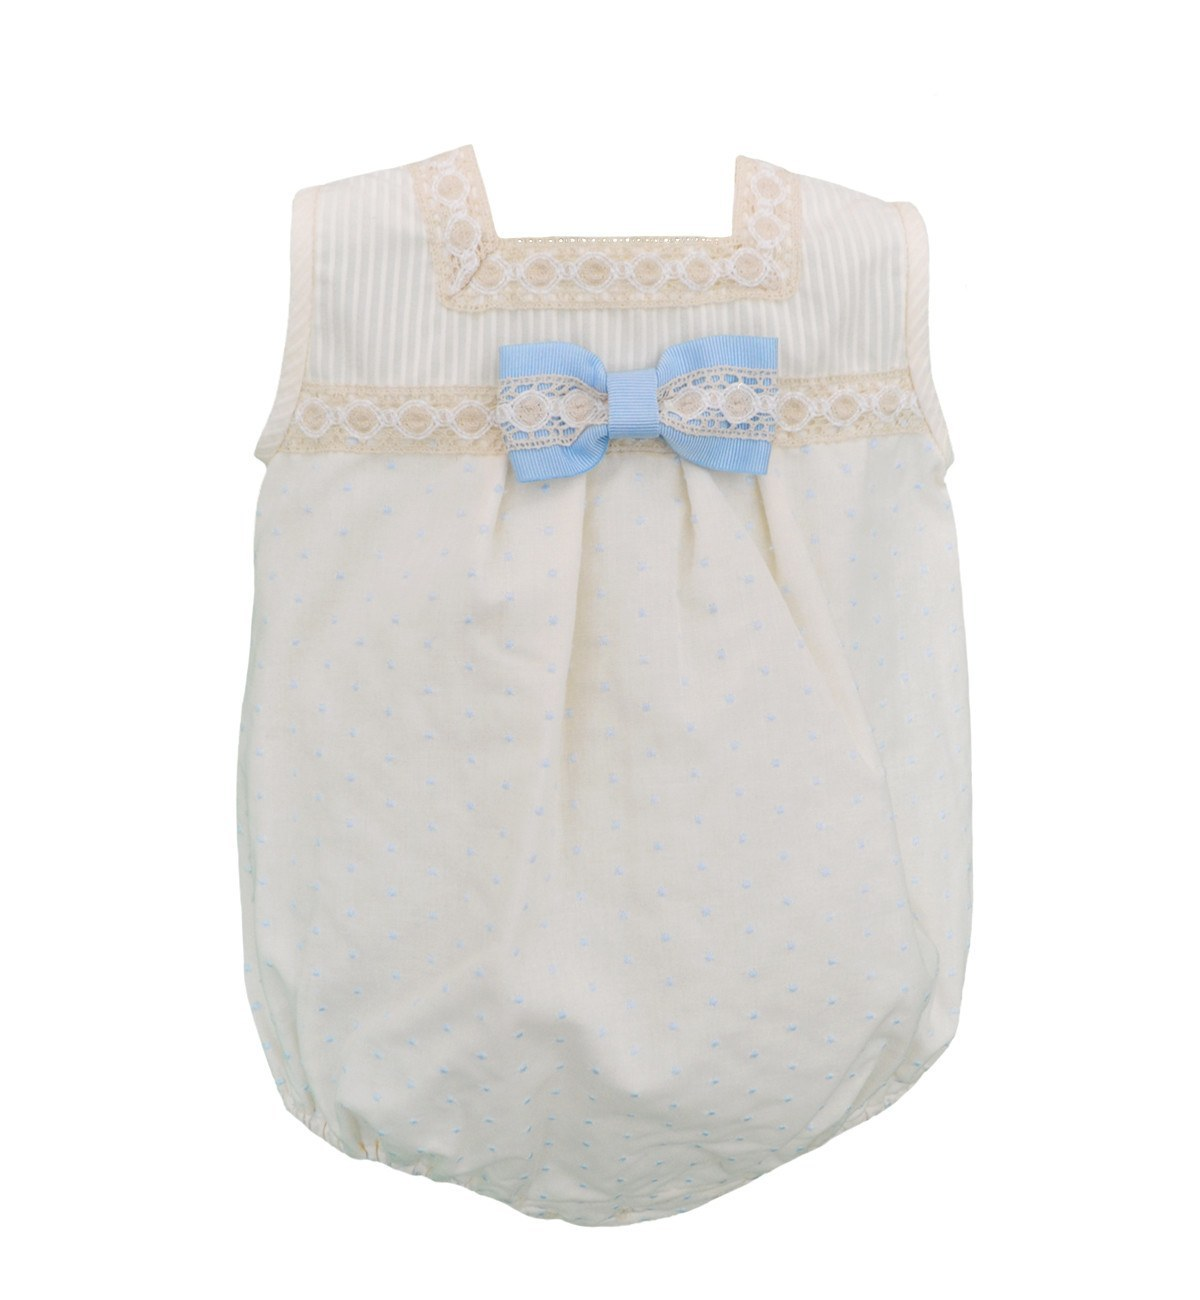 Spanish baby clothes | baby Christening dress | Christening romper & bonnet set (baby boy) |babymaC  - 1